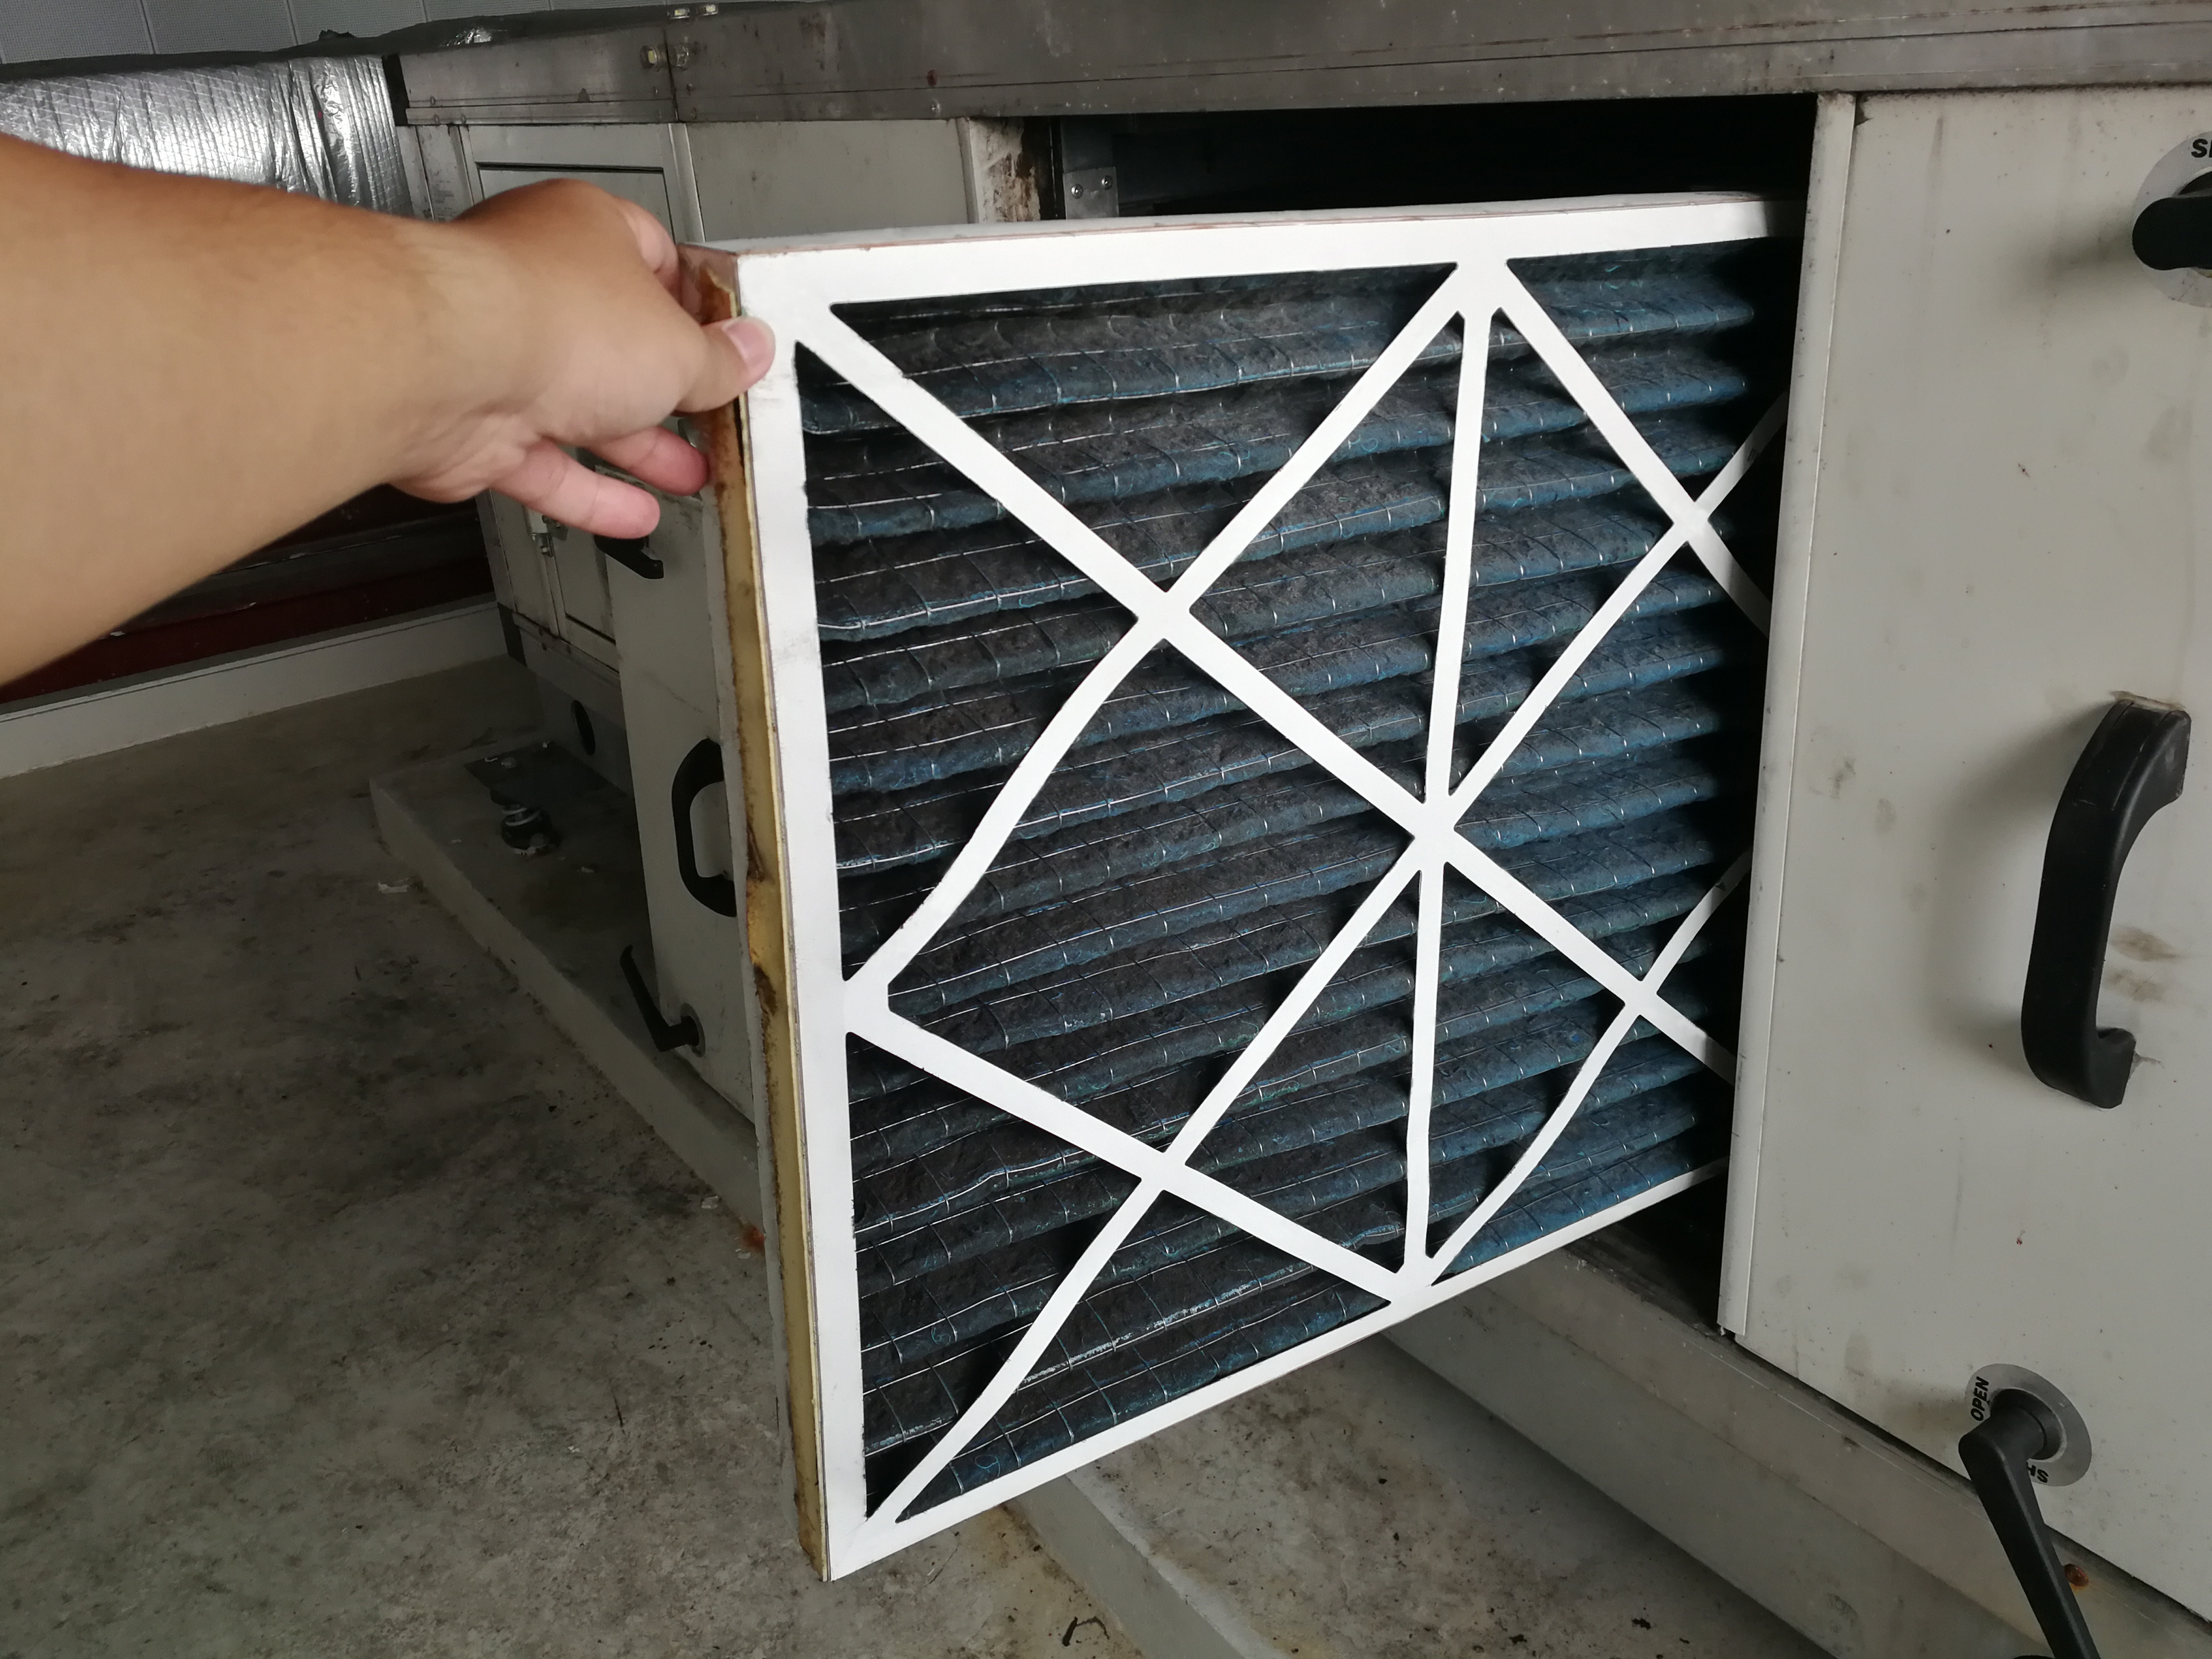 Furnace filter guide: How often you should replace your filter and more     - CNET